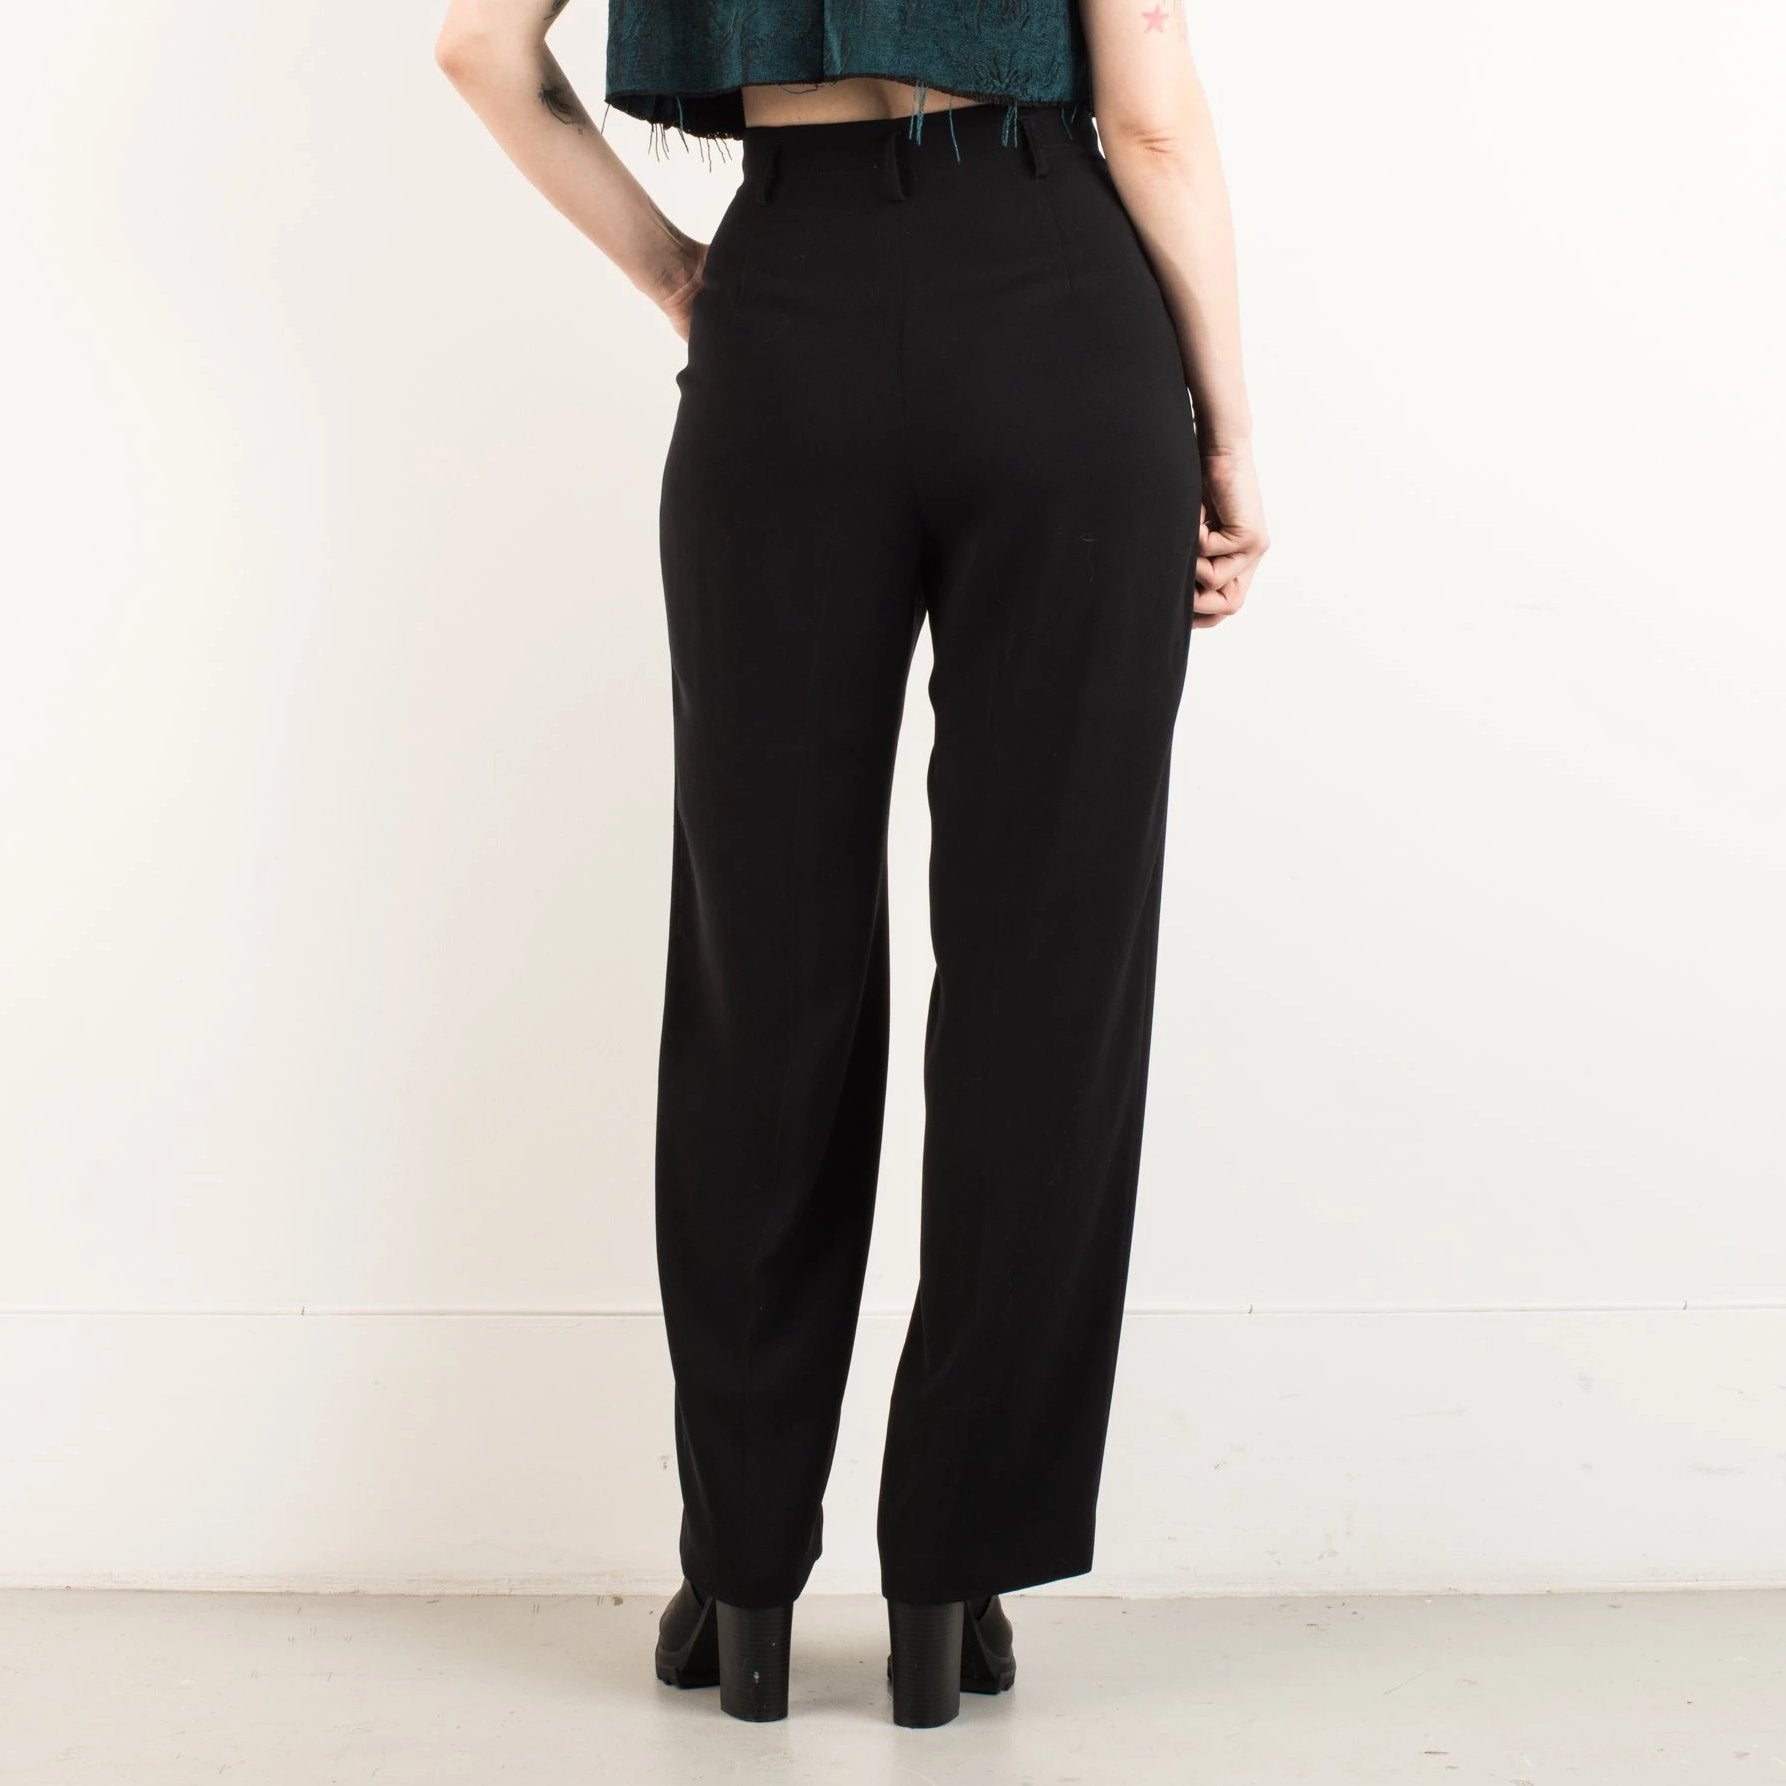 Vintage Charcoal High Waist Wide Leg Pleated Trousers / M - Closed Caption